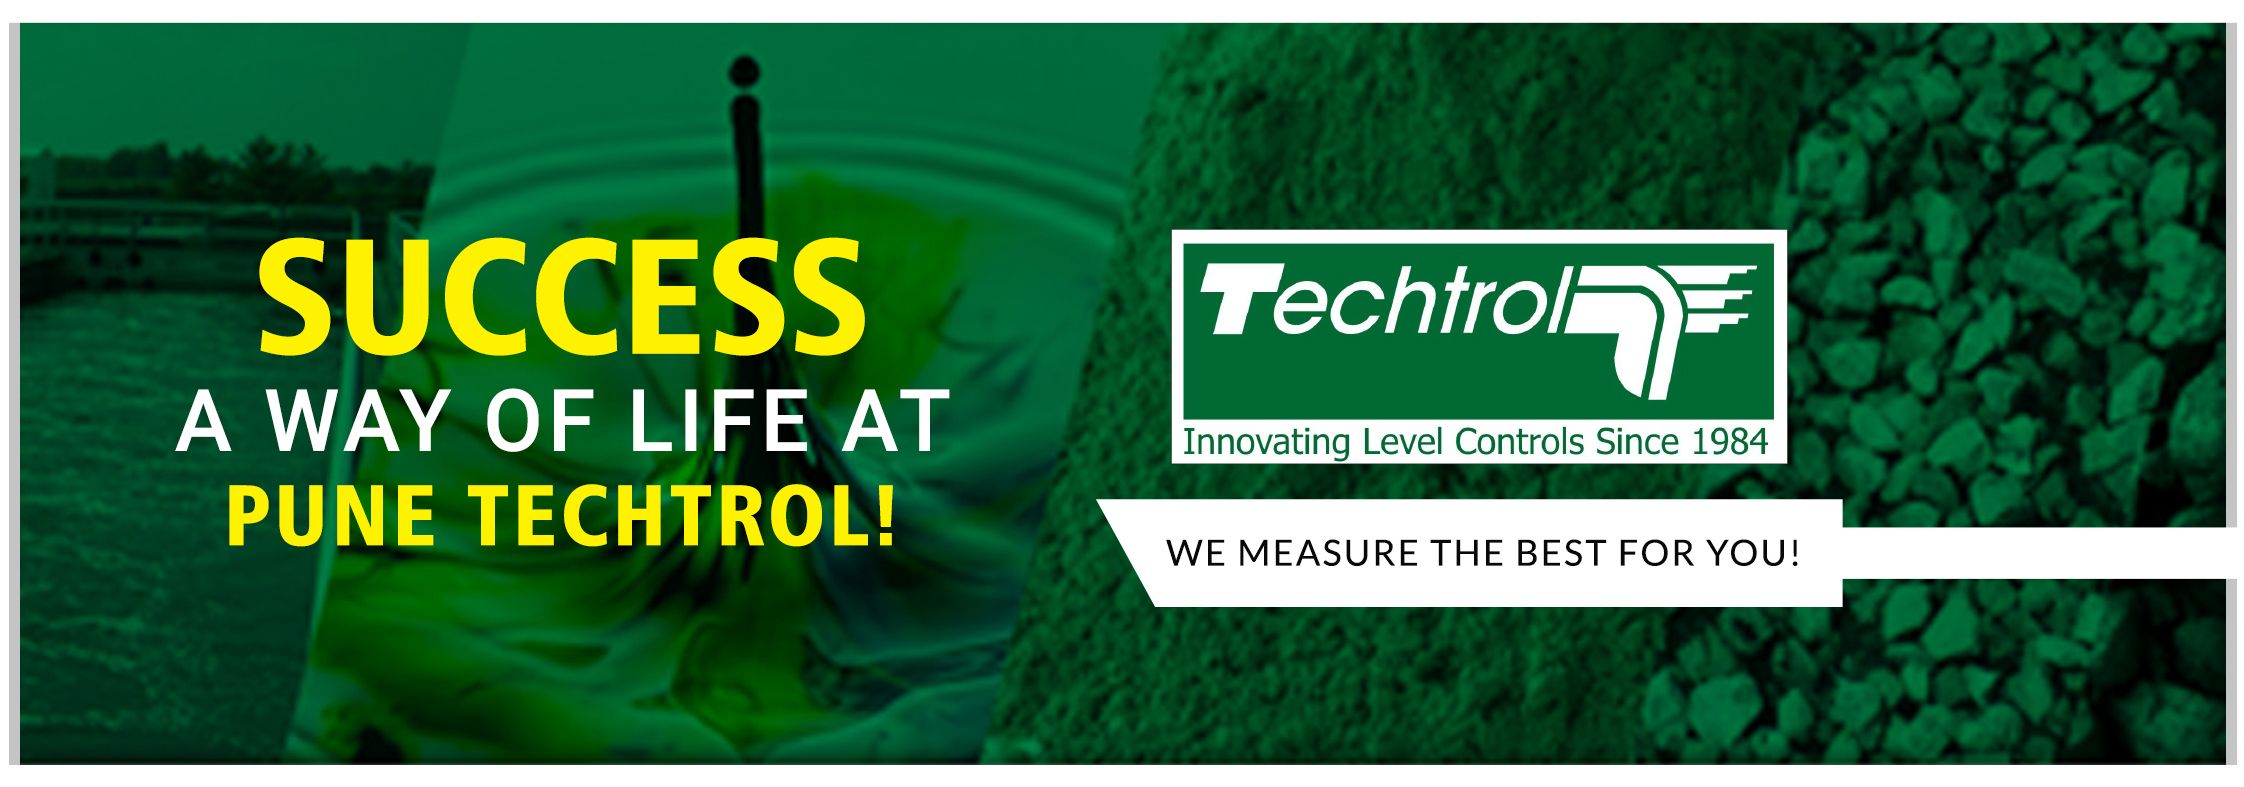 Success - A way of life at Pune Techtrol!